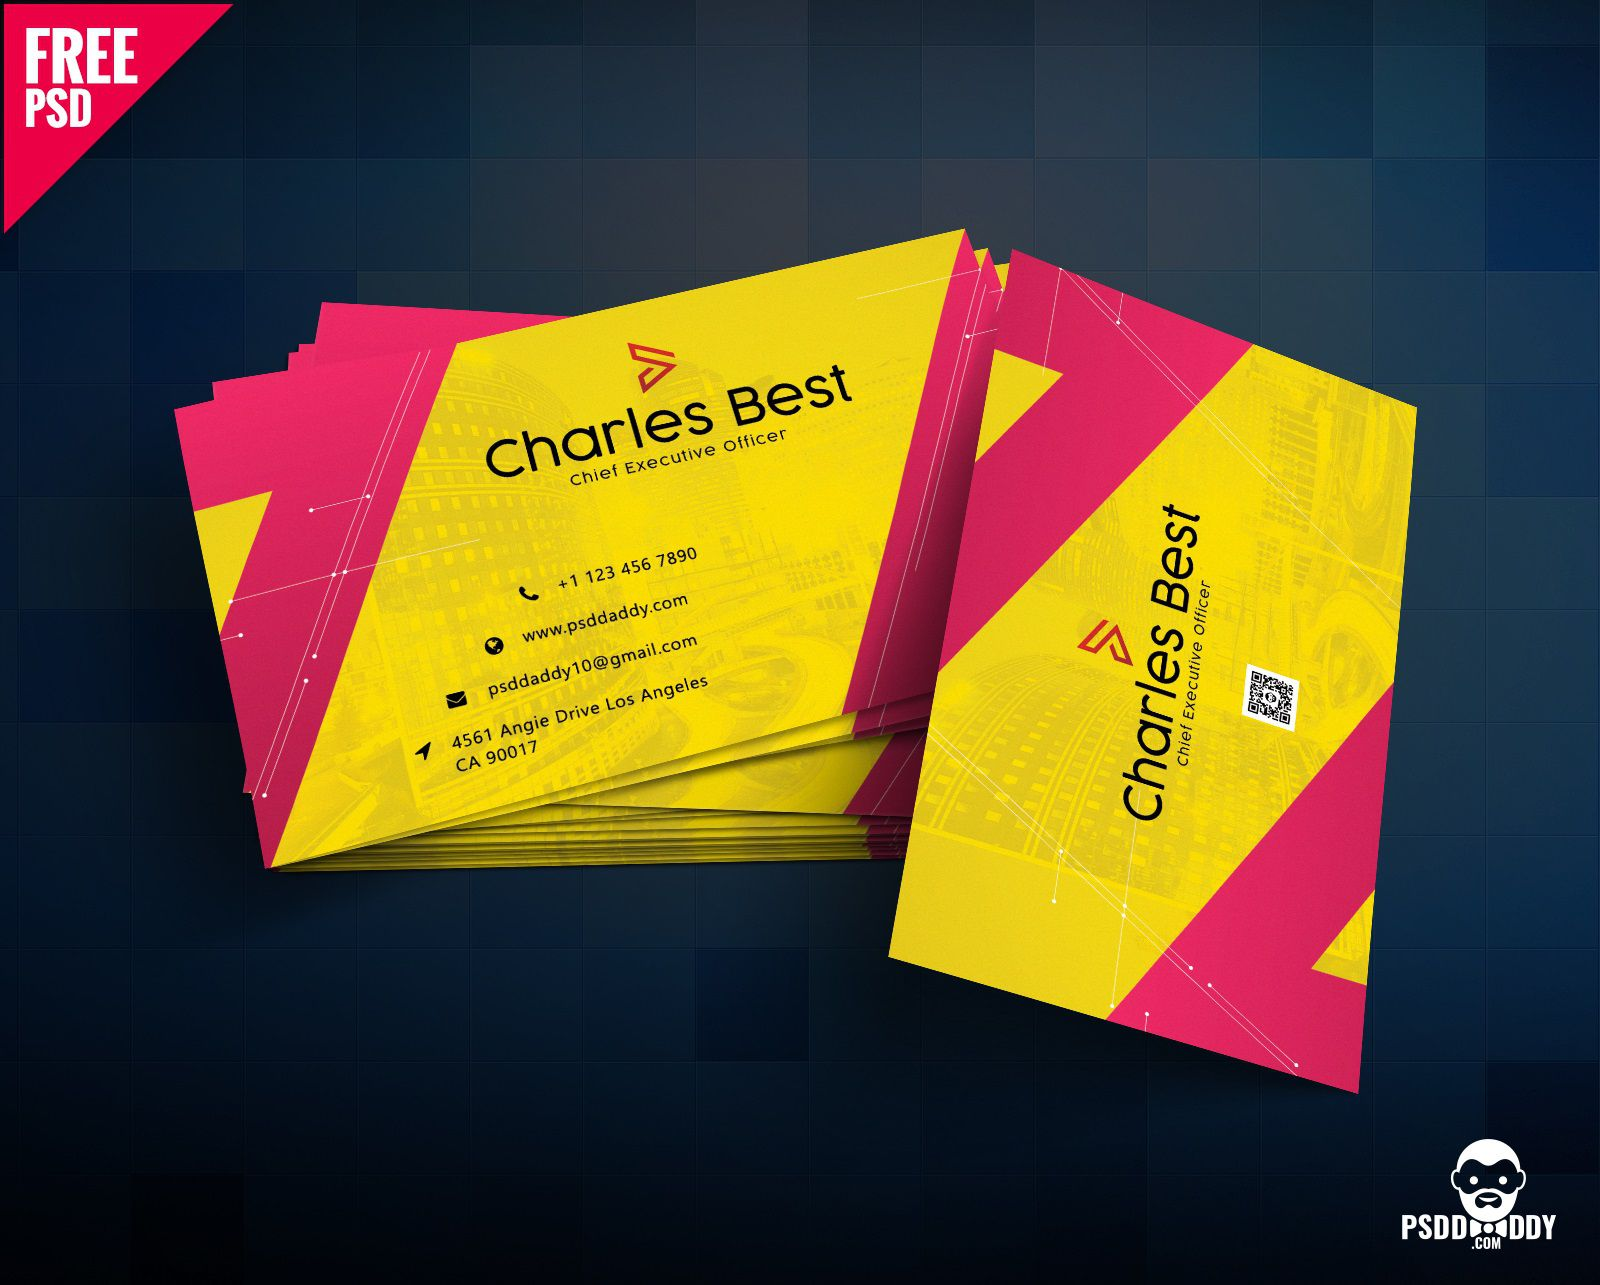 006 Stirring Free Photoshop Busines Card Template Concept  Blank Download Adobe Psd MockupFull